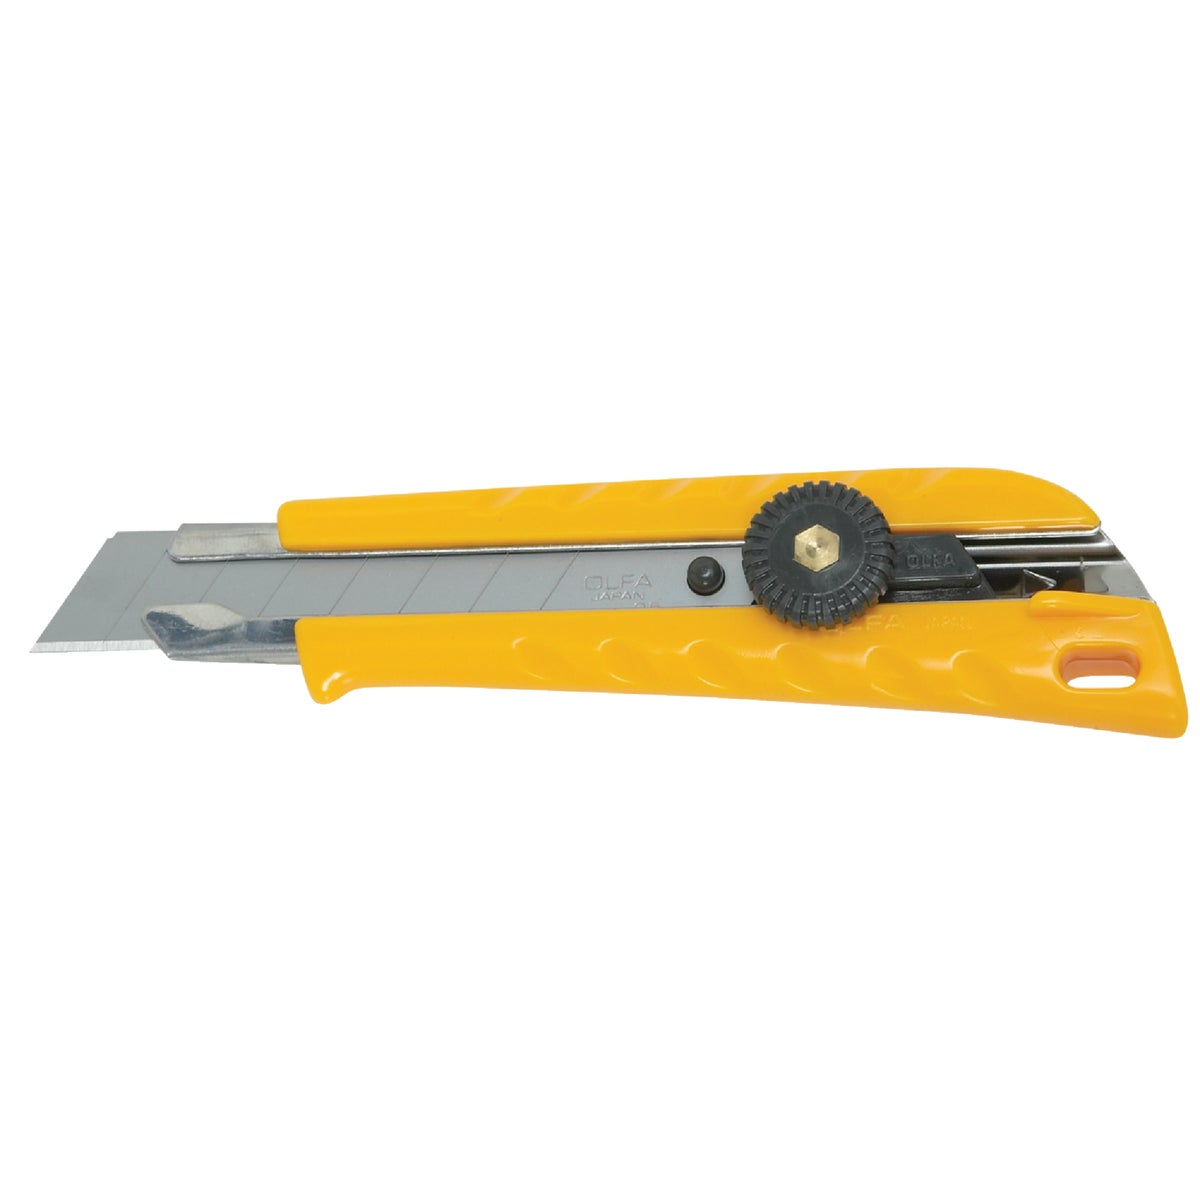 HEAVY DUTY CUTTER - 5003 by Olfa  Incom